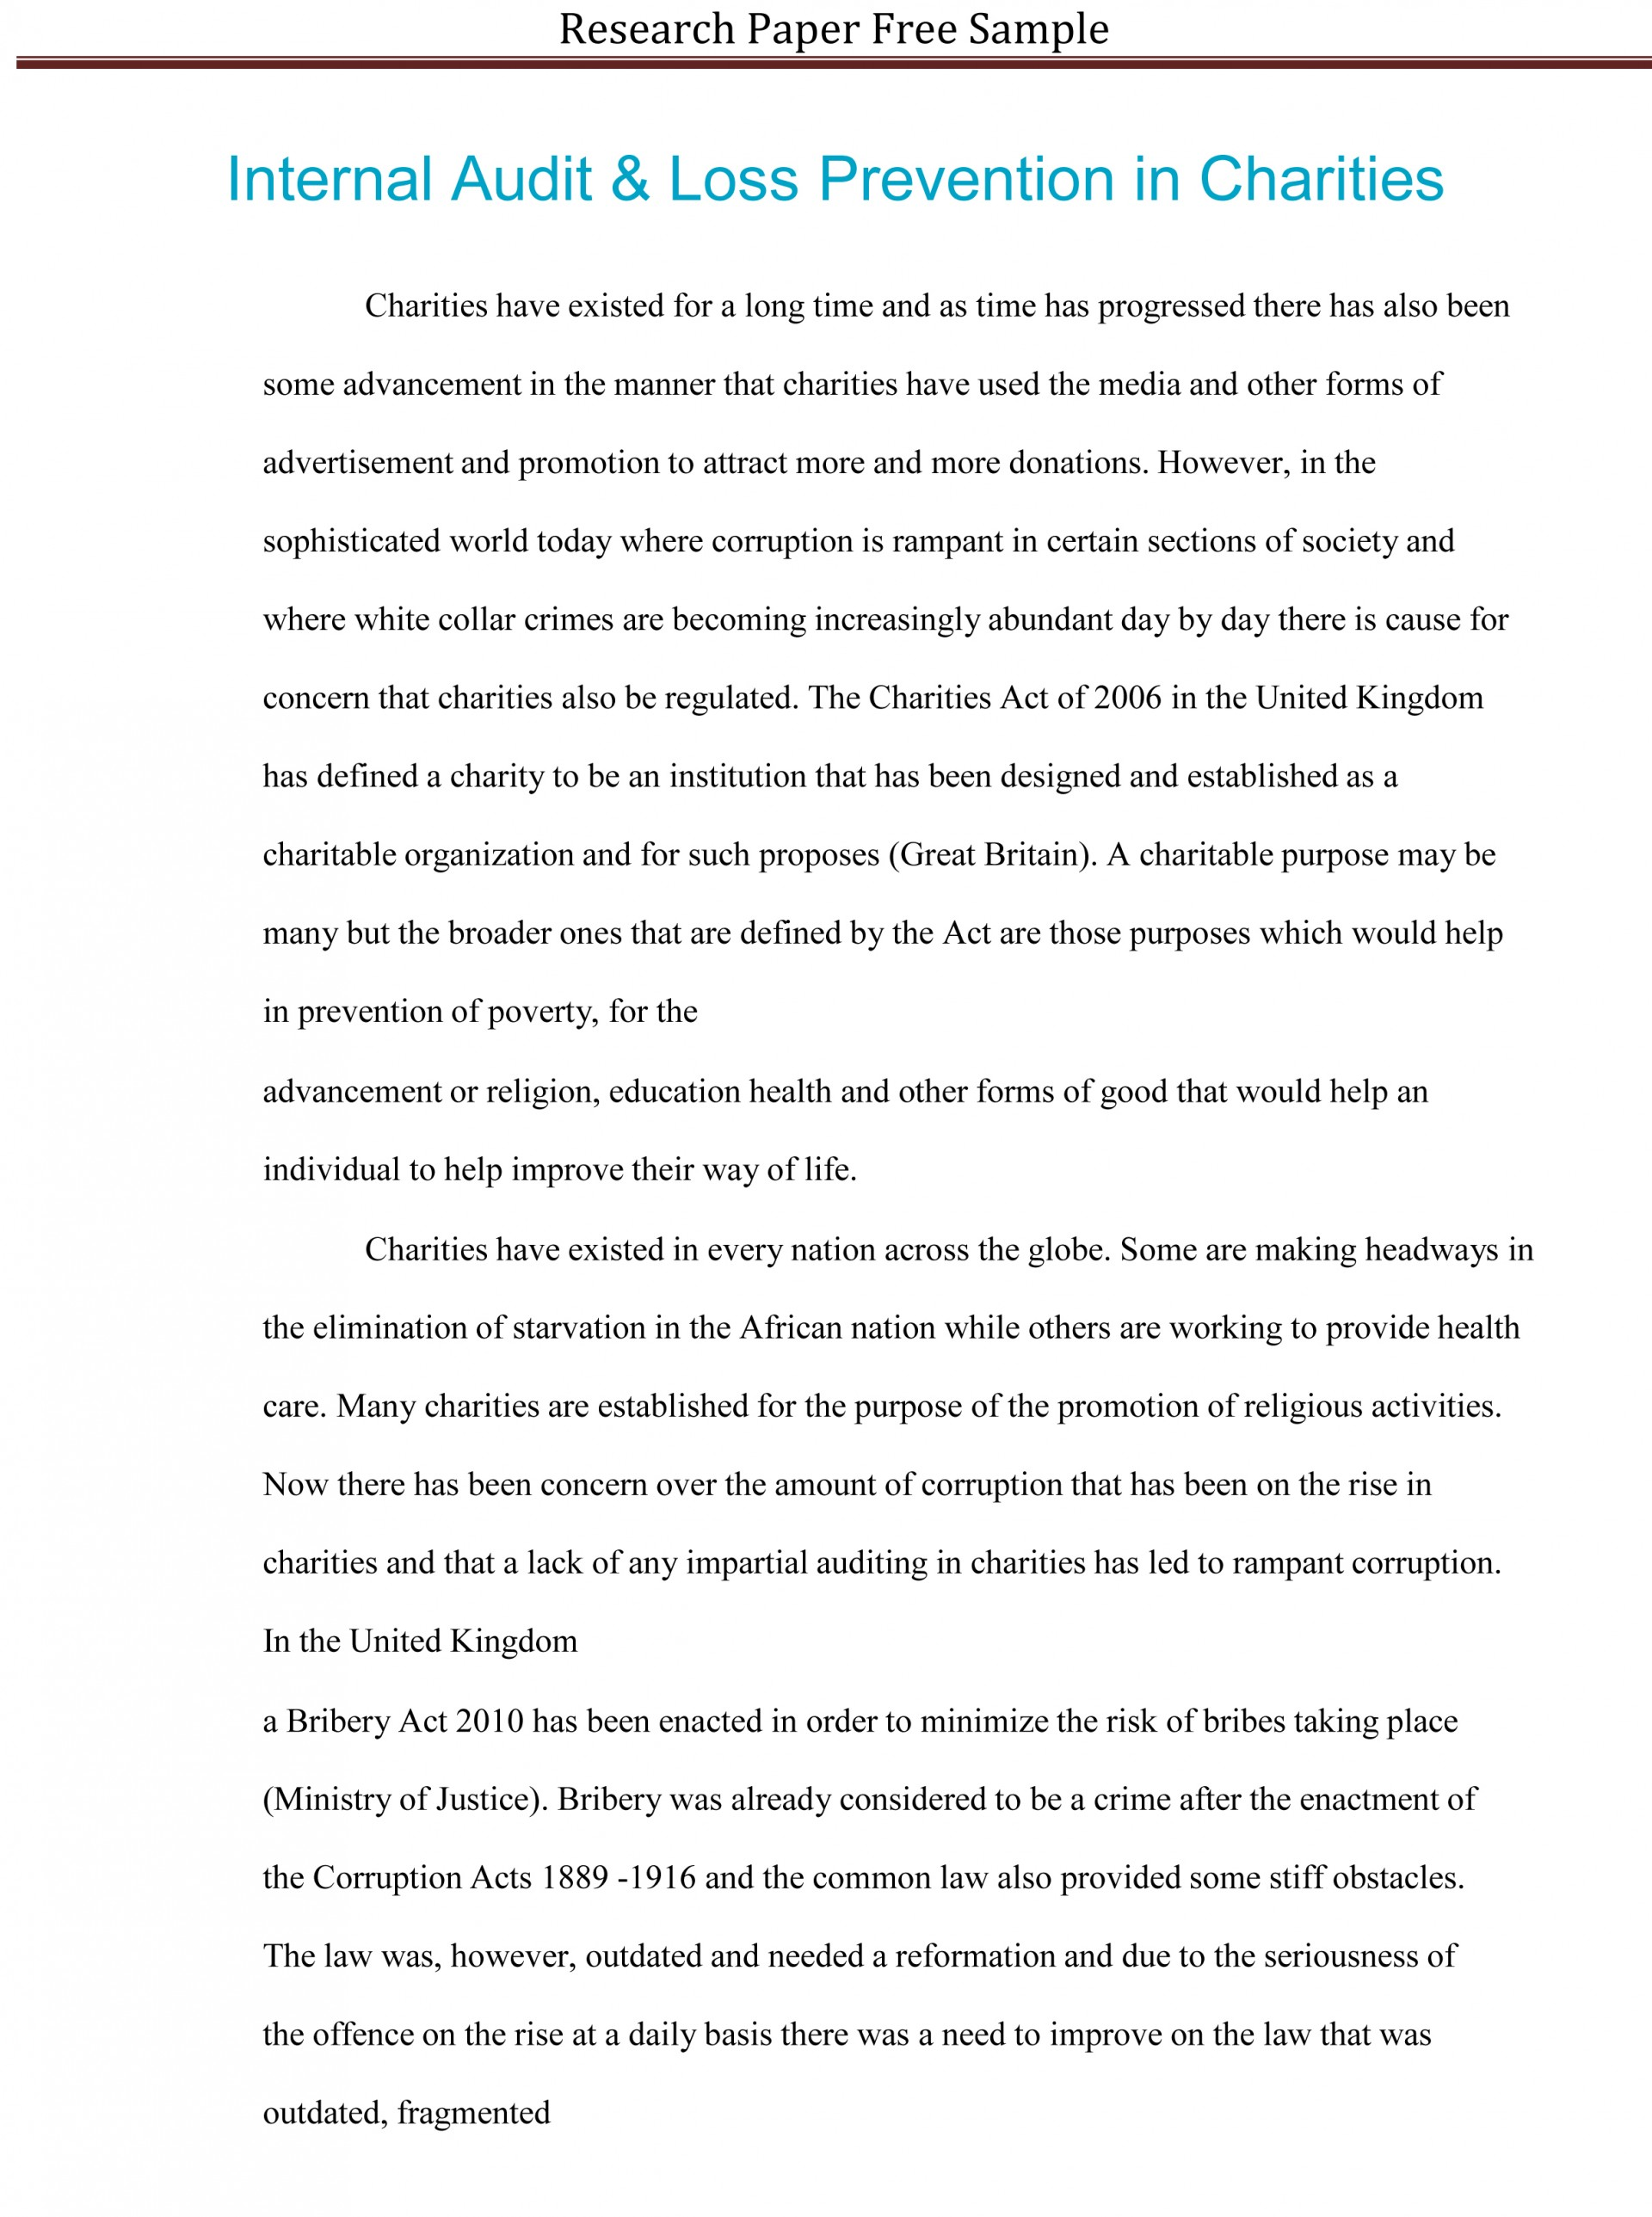 009 Research Paper Sample Examples Of College Incredible Papers Example Apa Style Format 1920